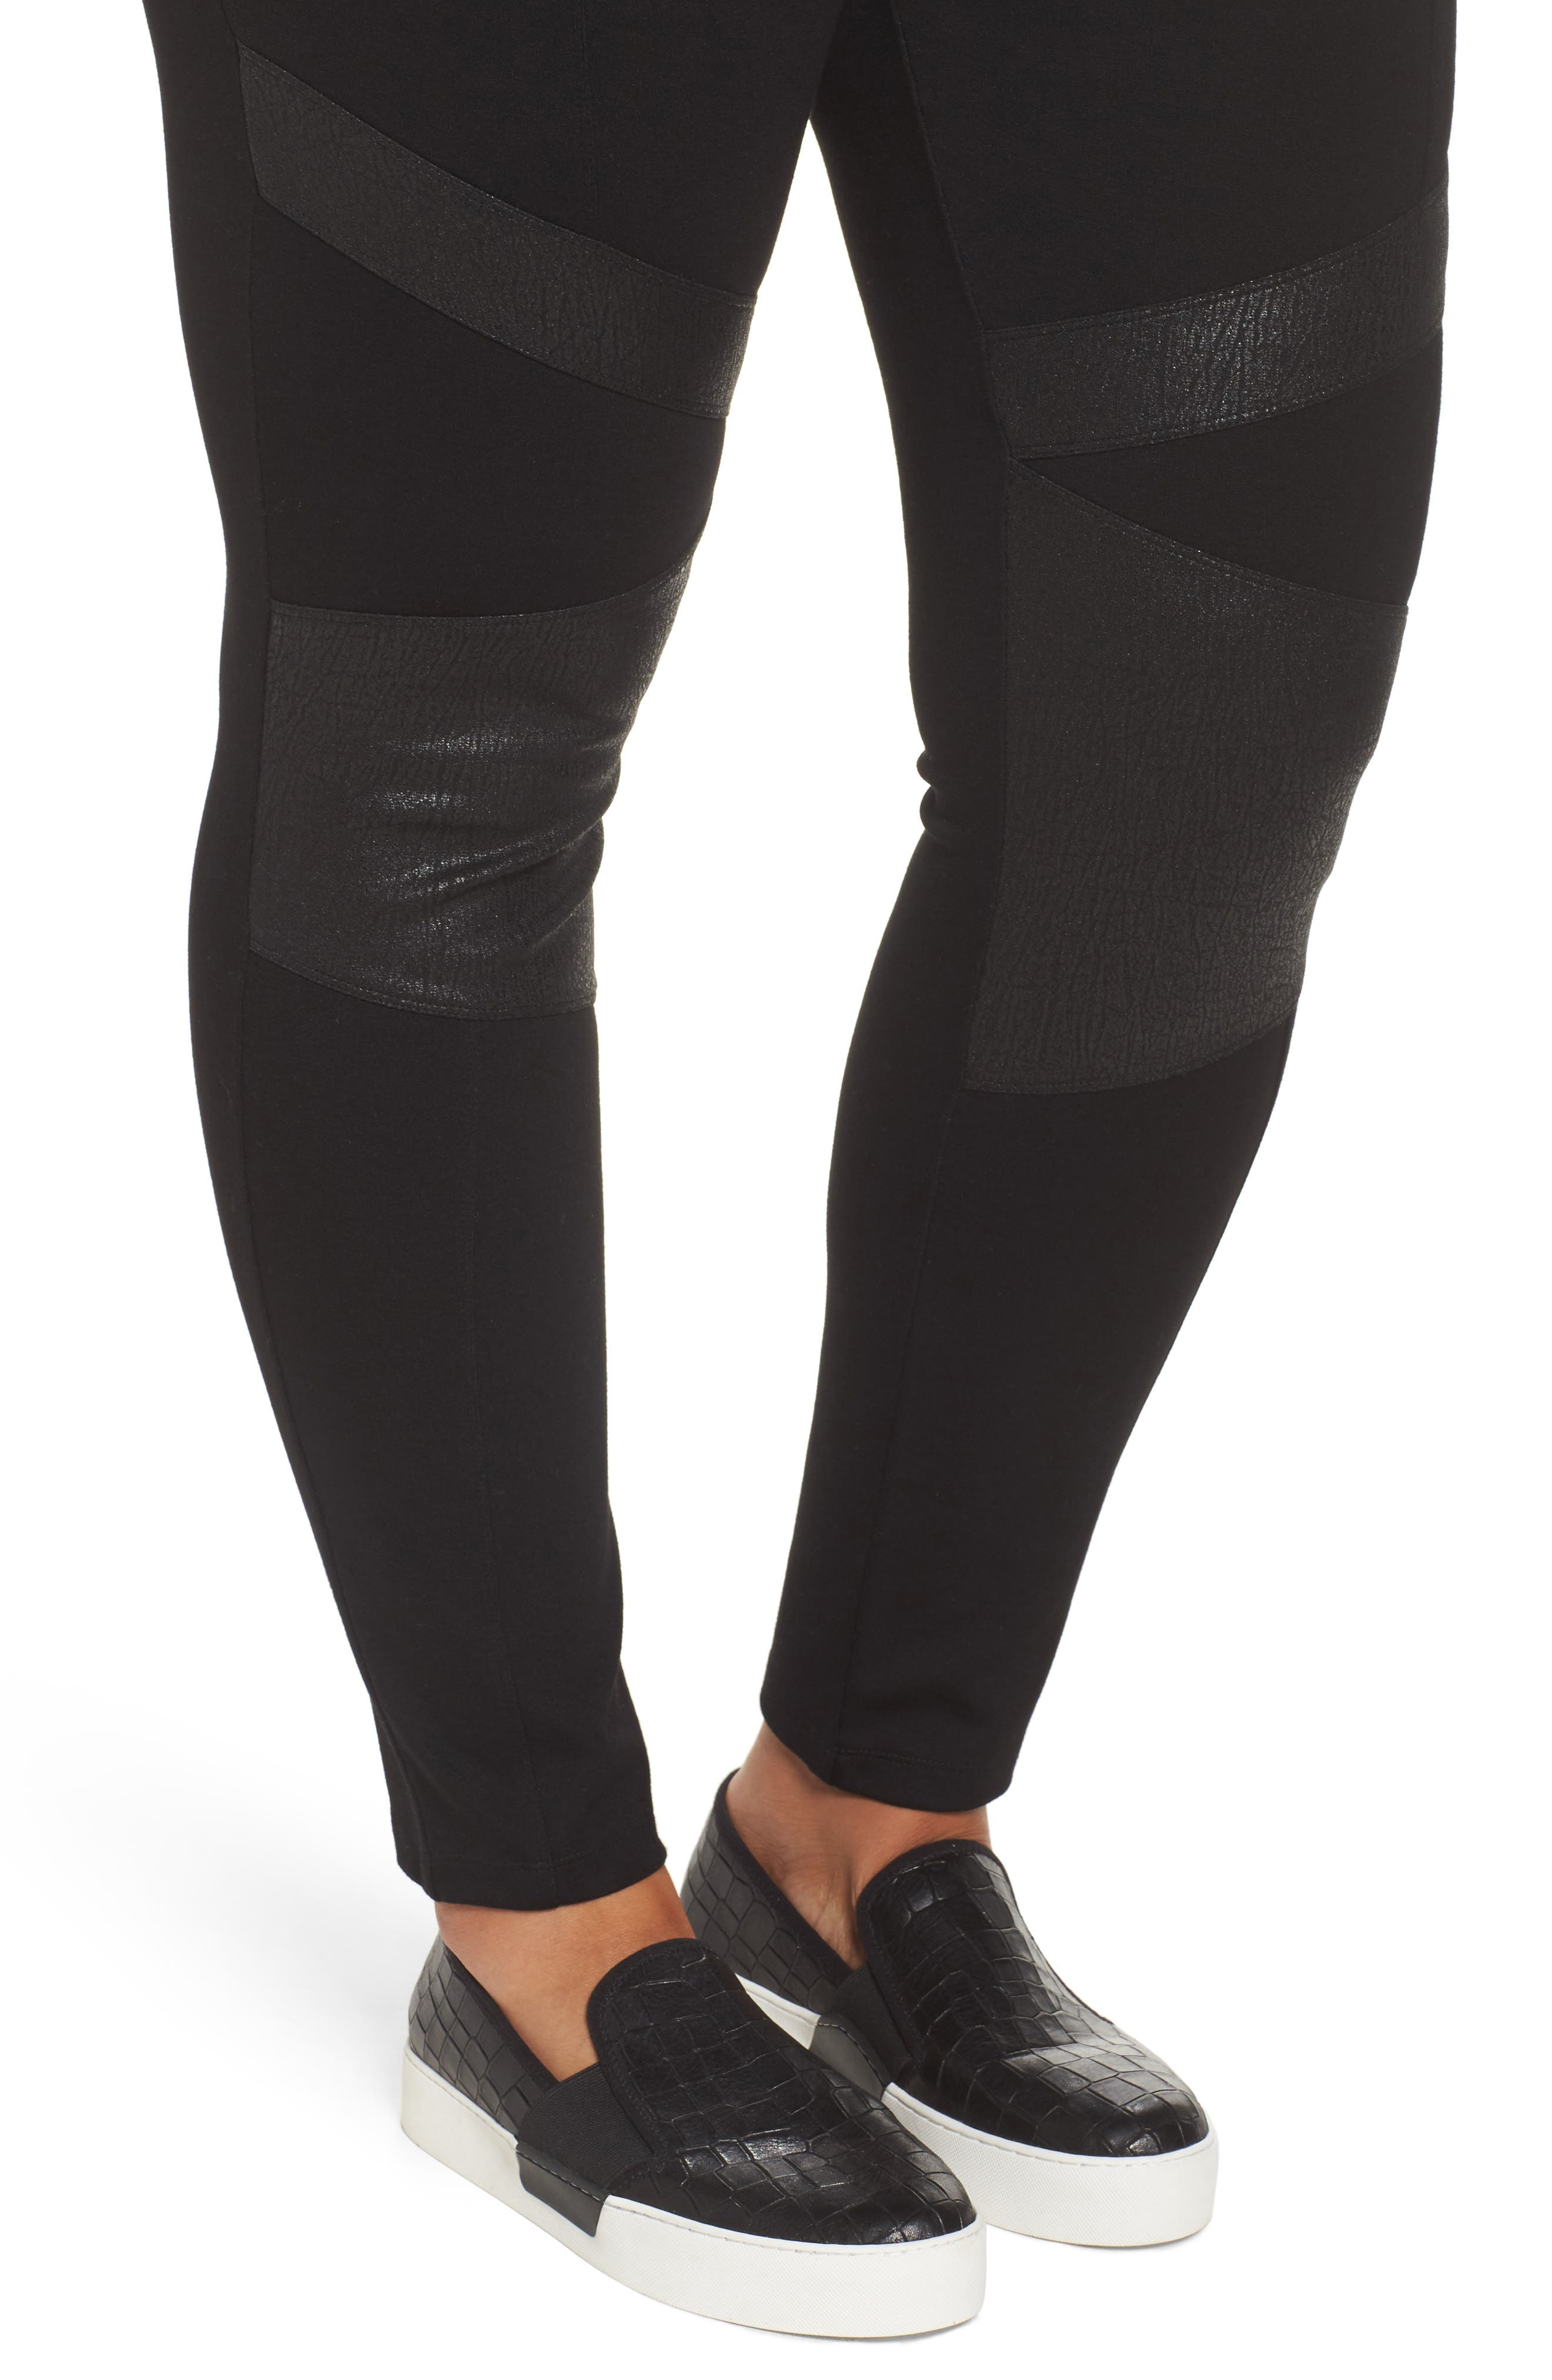 TWO BY VINCE CAMUTO,                             High Rise Lacquer Inset Moto Leggings,                             Alternate thumbnail 4, color,                             RICH BLACK